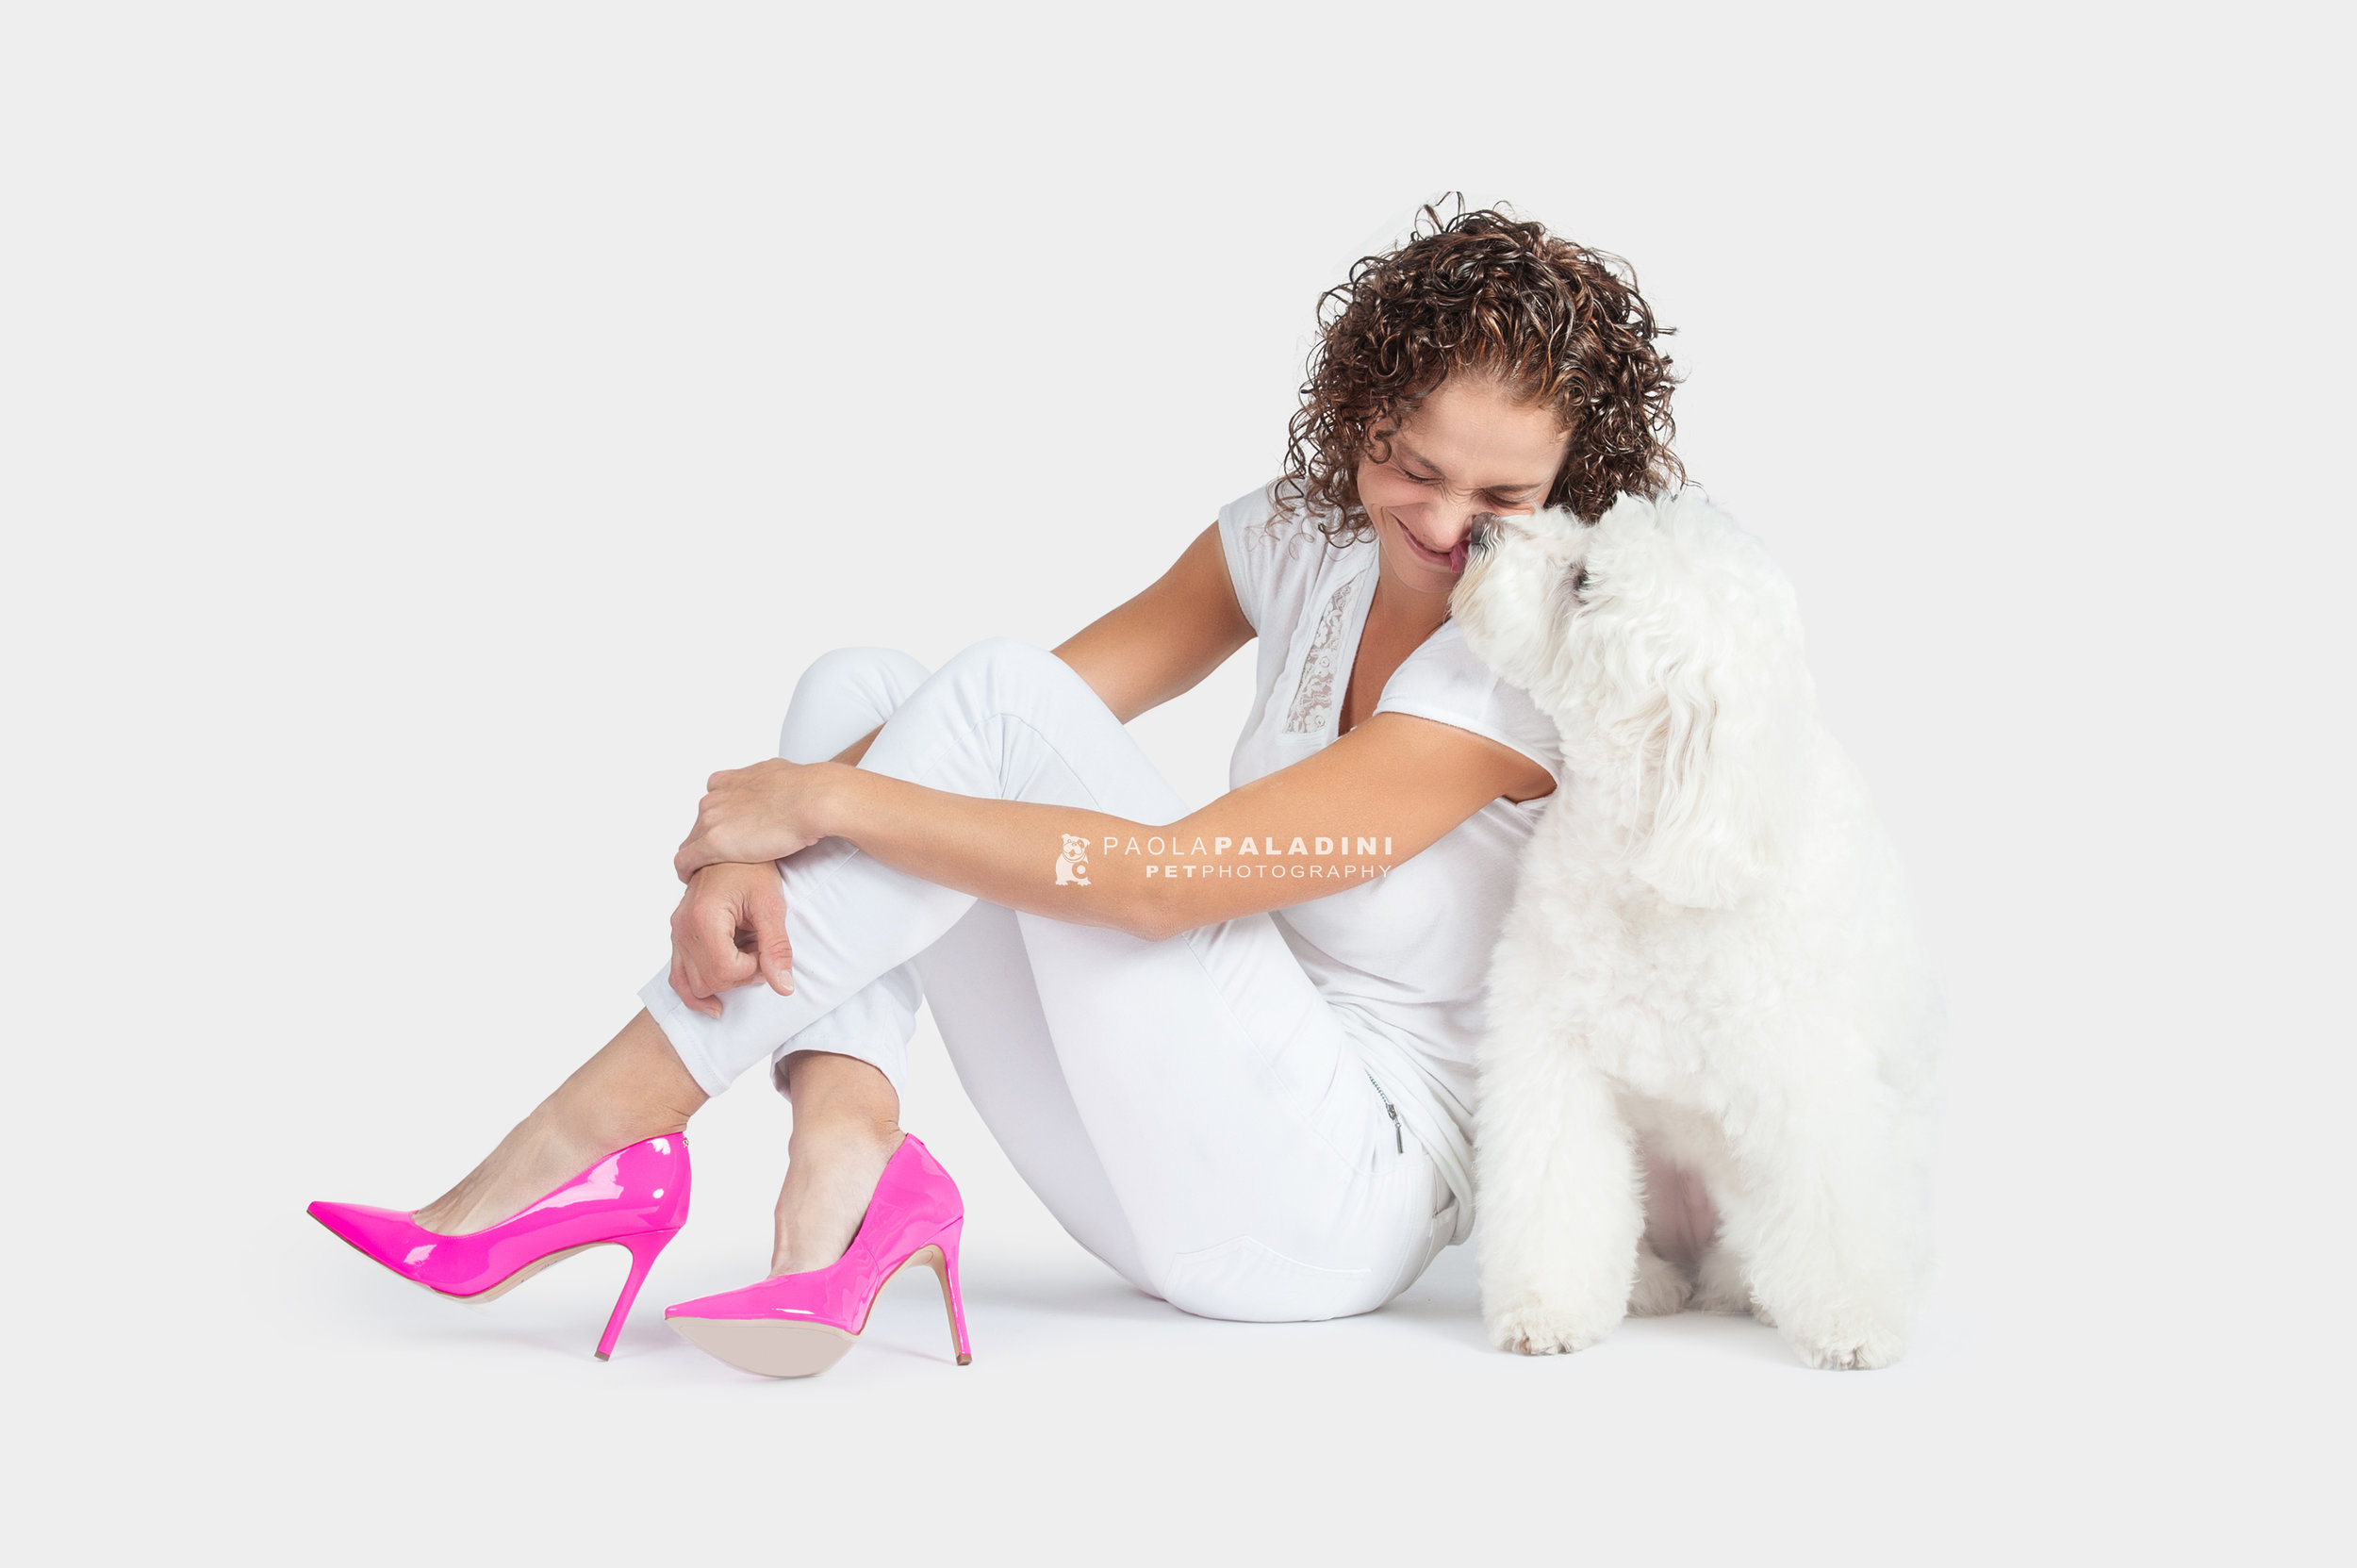 Paola-Paladini-White-on-White-Hounds-and-Heels-poodle-1